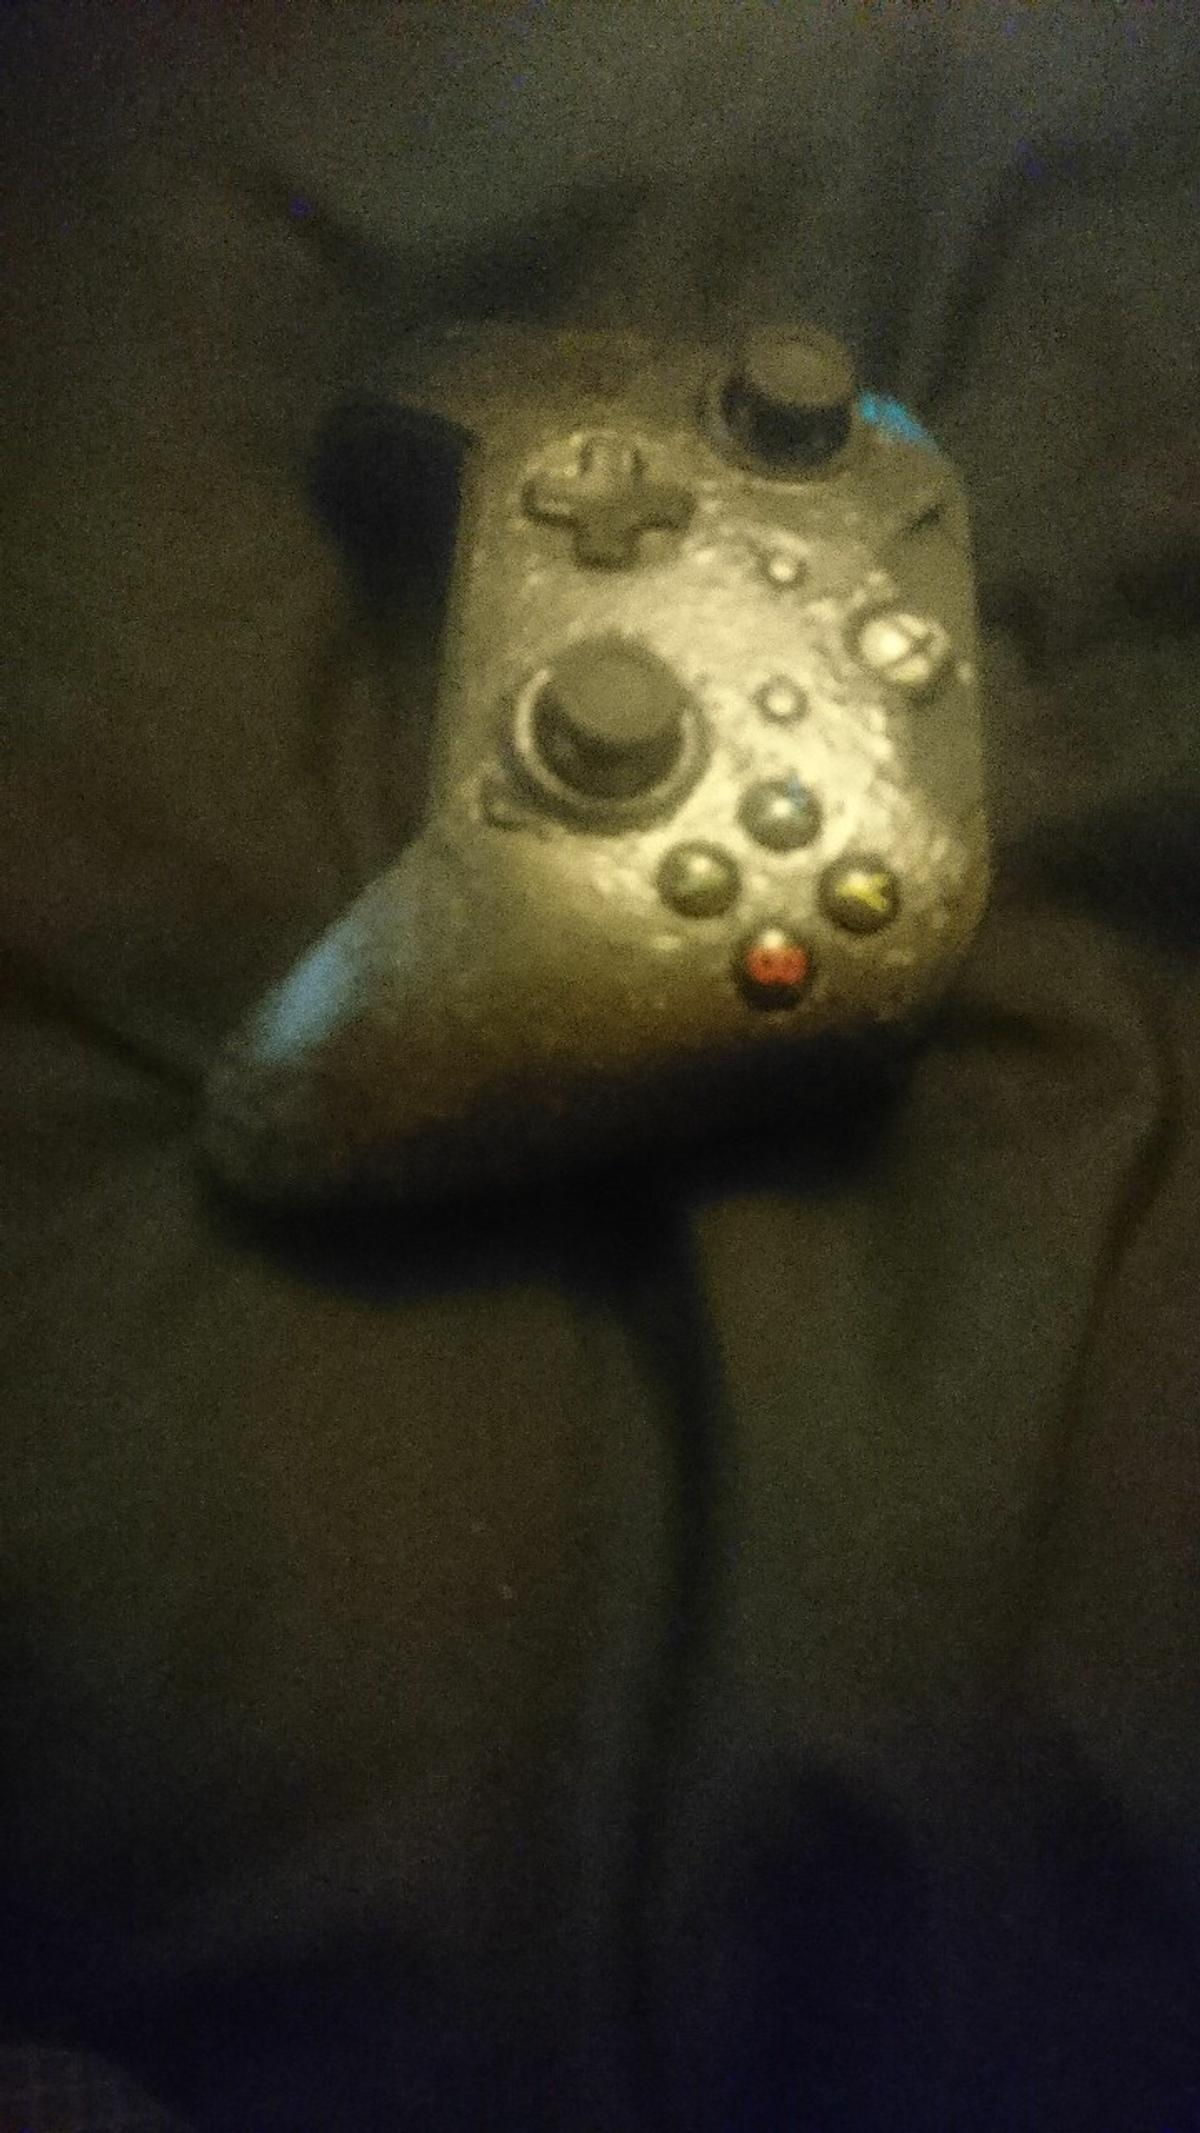 xbox one modded controler with remapable buttons on back of controler, one extra button at front and changeable front face plate comes with a 5 meter power cable. good condition no button sticking or togle drift £30 ono